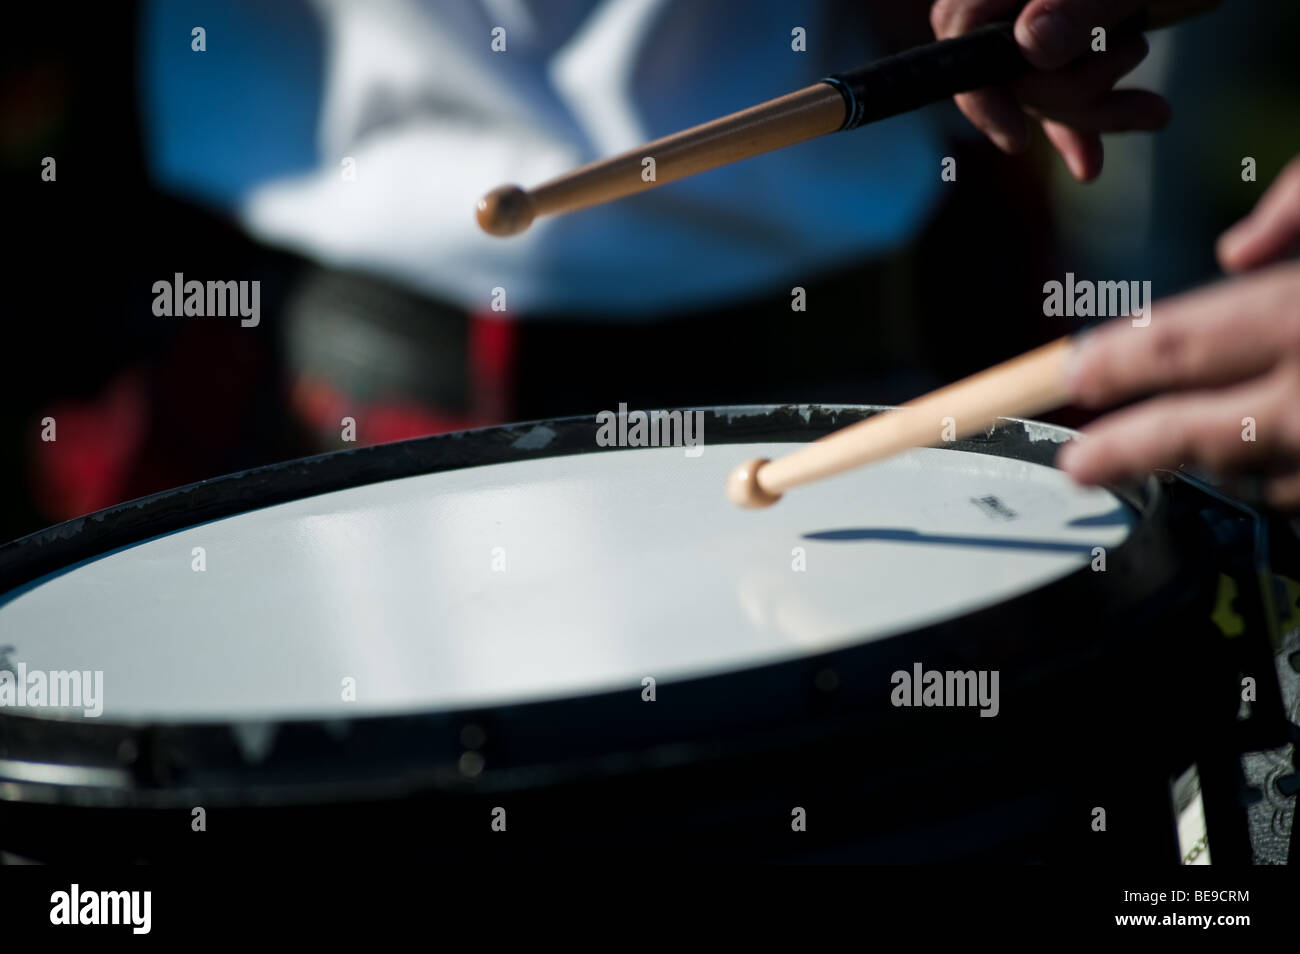 Pipe Band Snare Drummer playing with sticks while marching - Stock Image